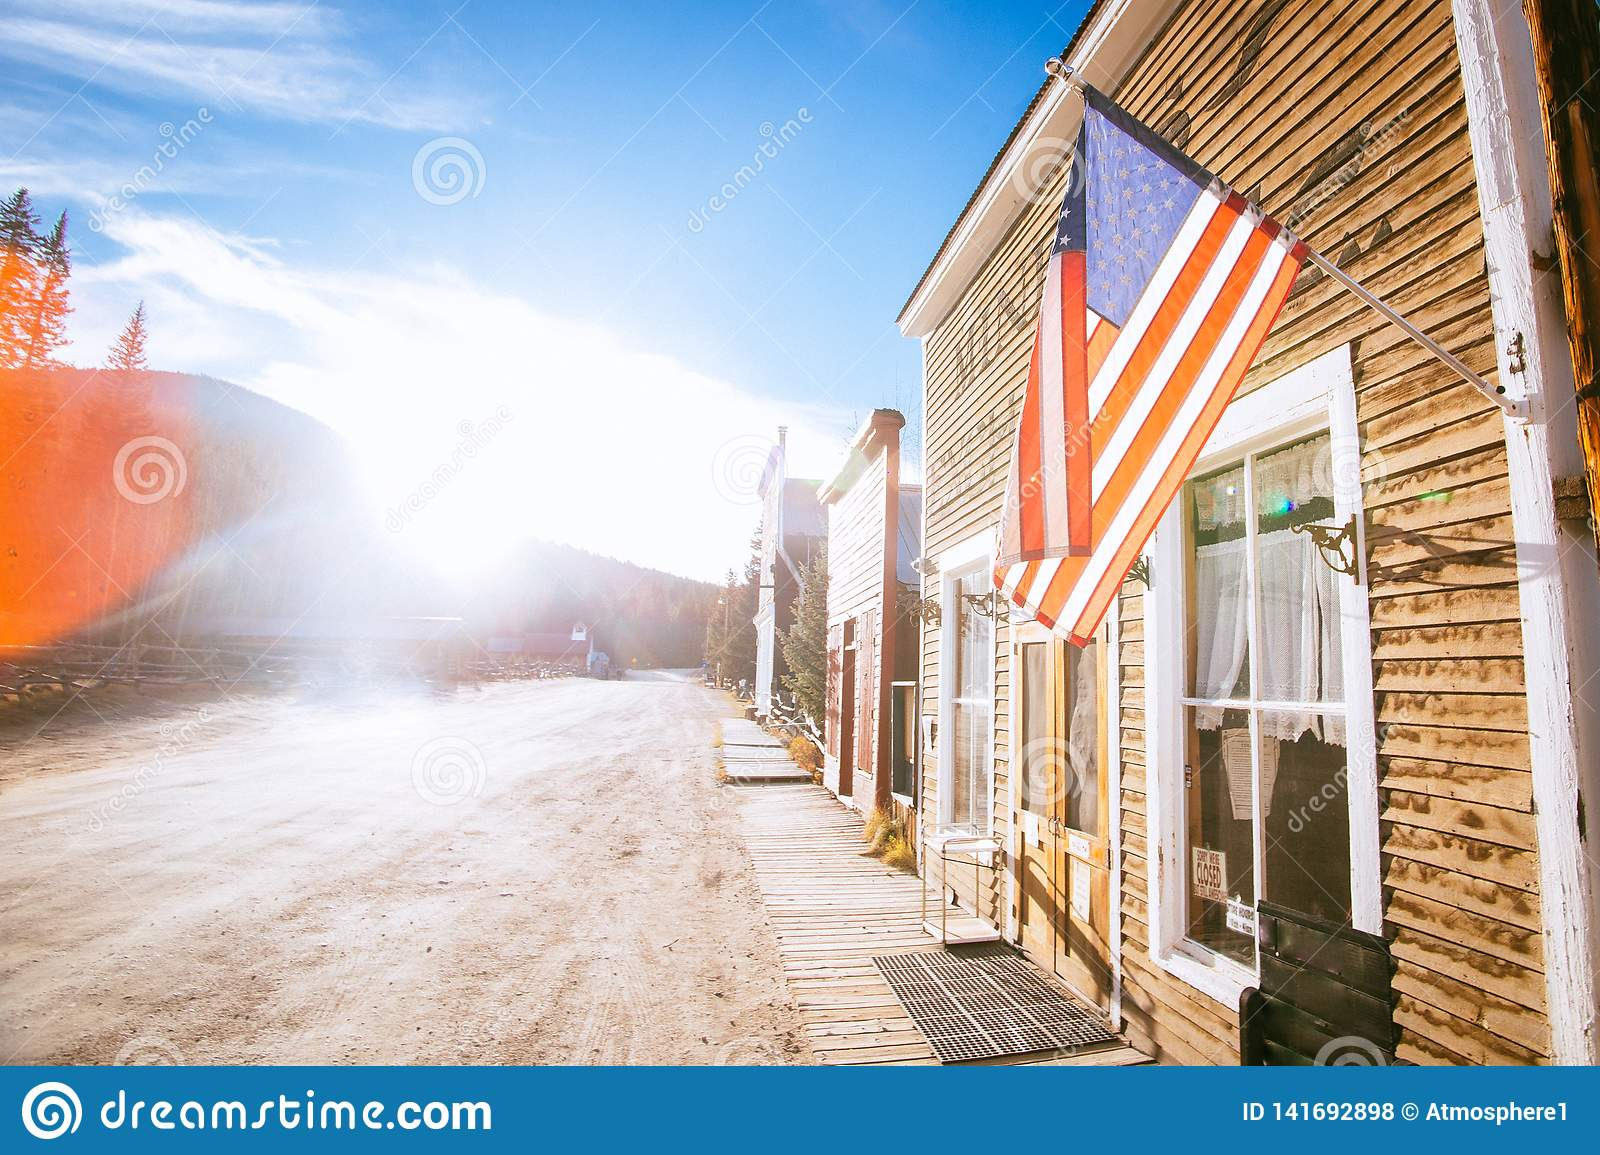 Old Western Wooden Buildings with flag of the united states, in St. Elmo Gold Mine Ghost Town in Colorado, USA